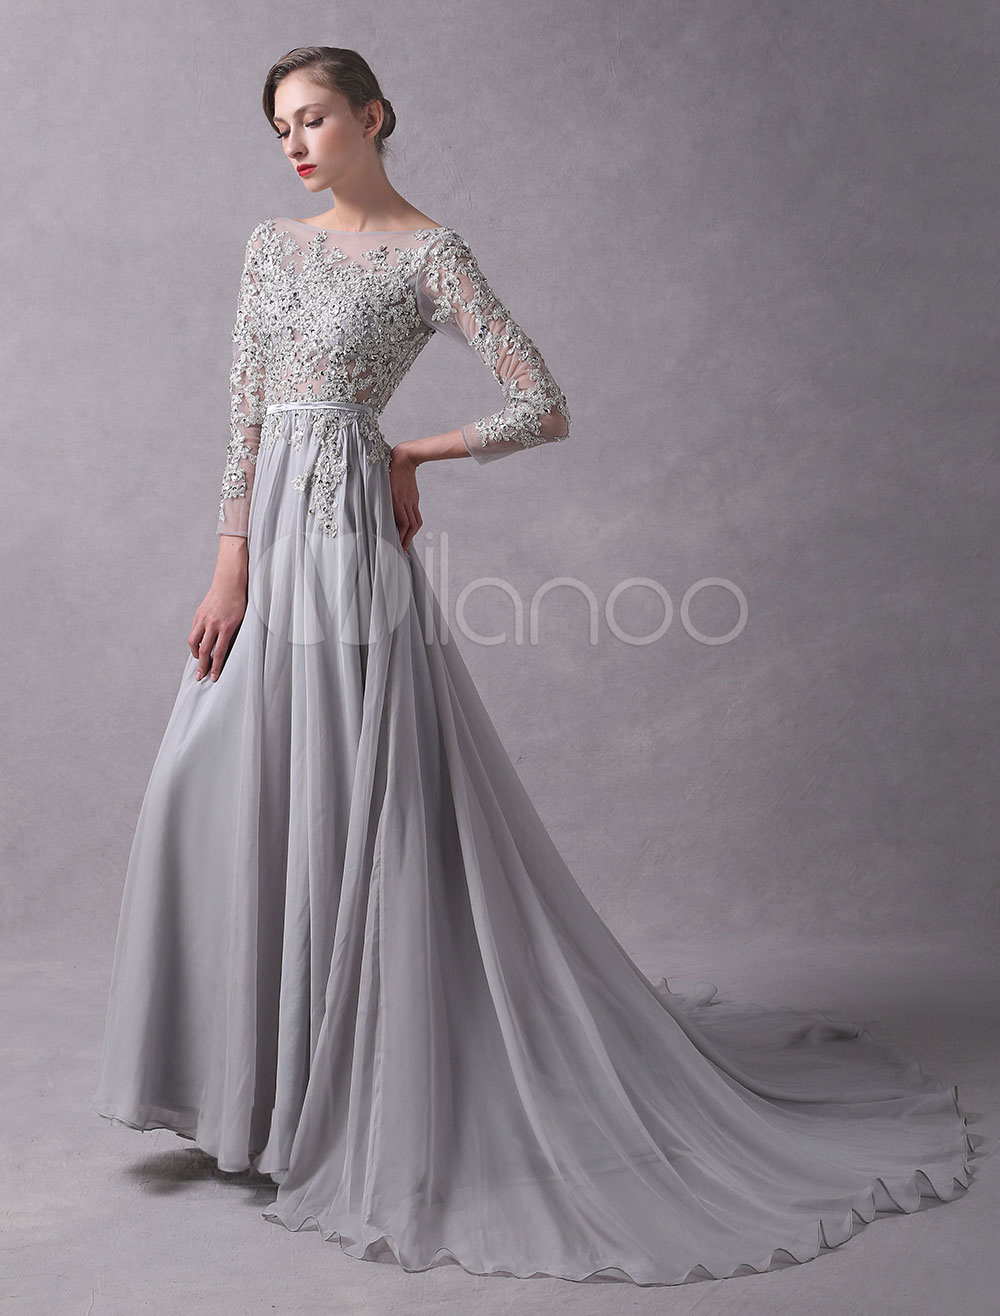 02312cf9c2 Evening Dresses Light Grey Backless Long Sleeve Lace Applique Beaded  Illusion Sash Formal Dresses With Train